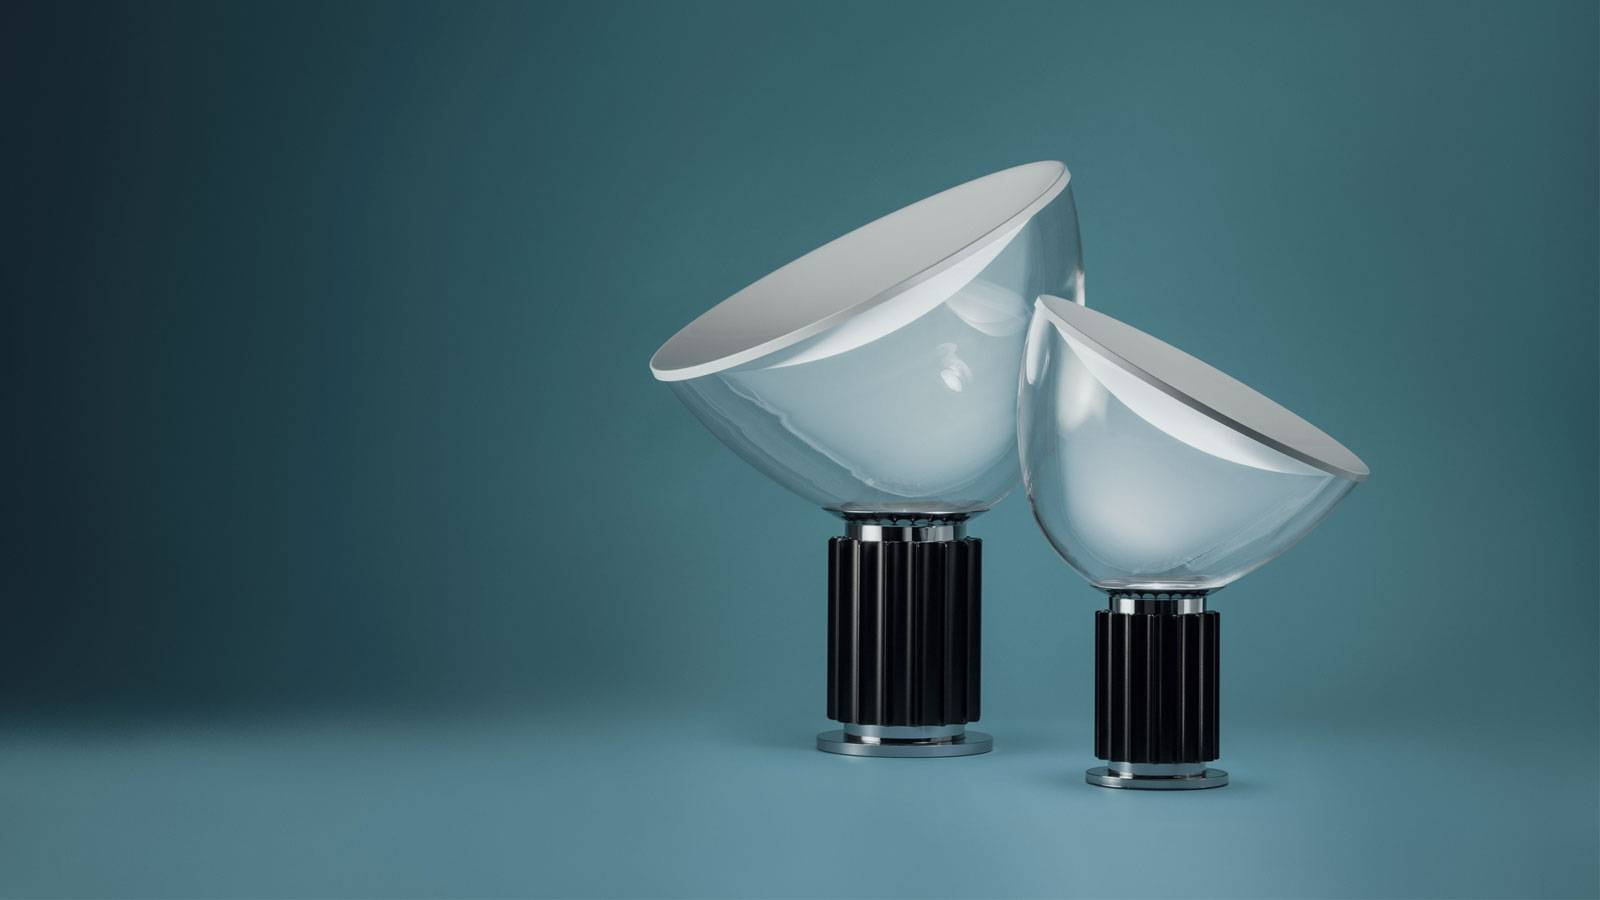 contemporary design lamp by Achille & Pier Giacomo Castiglioni for Flos